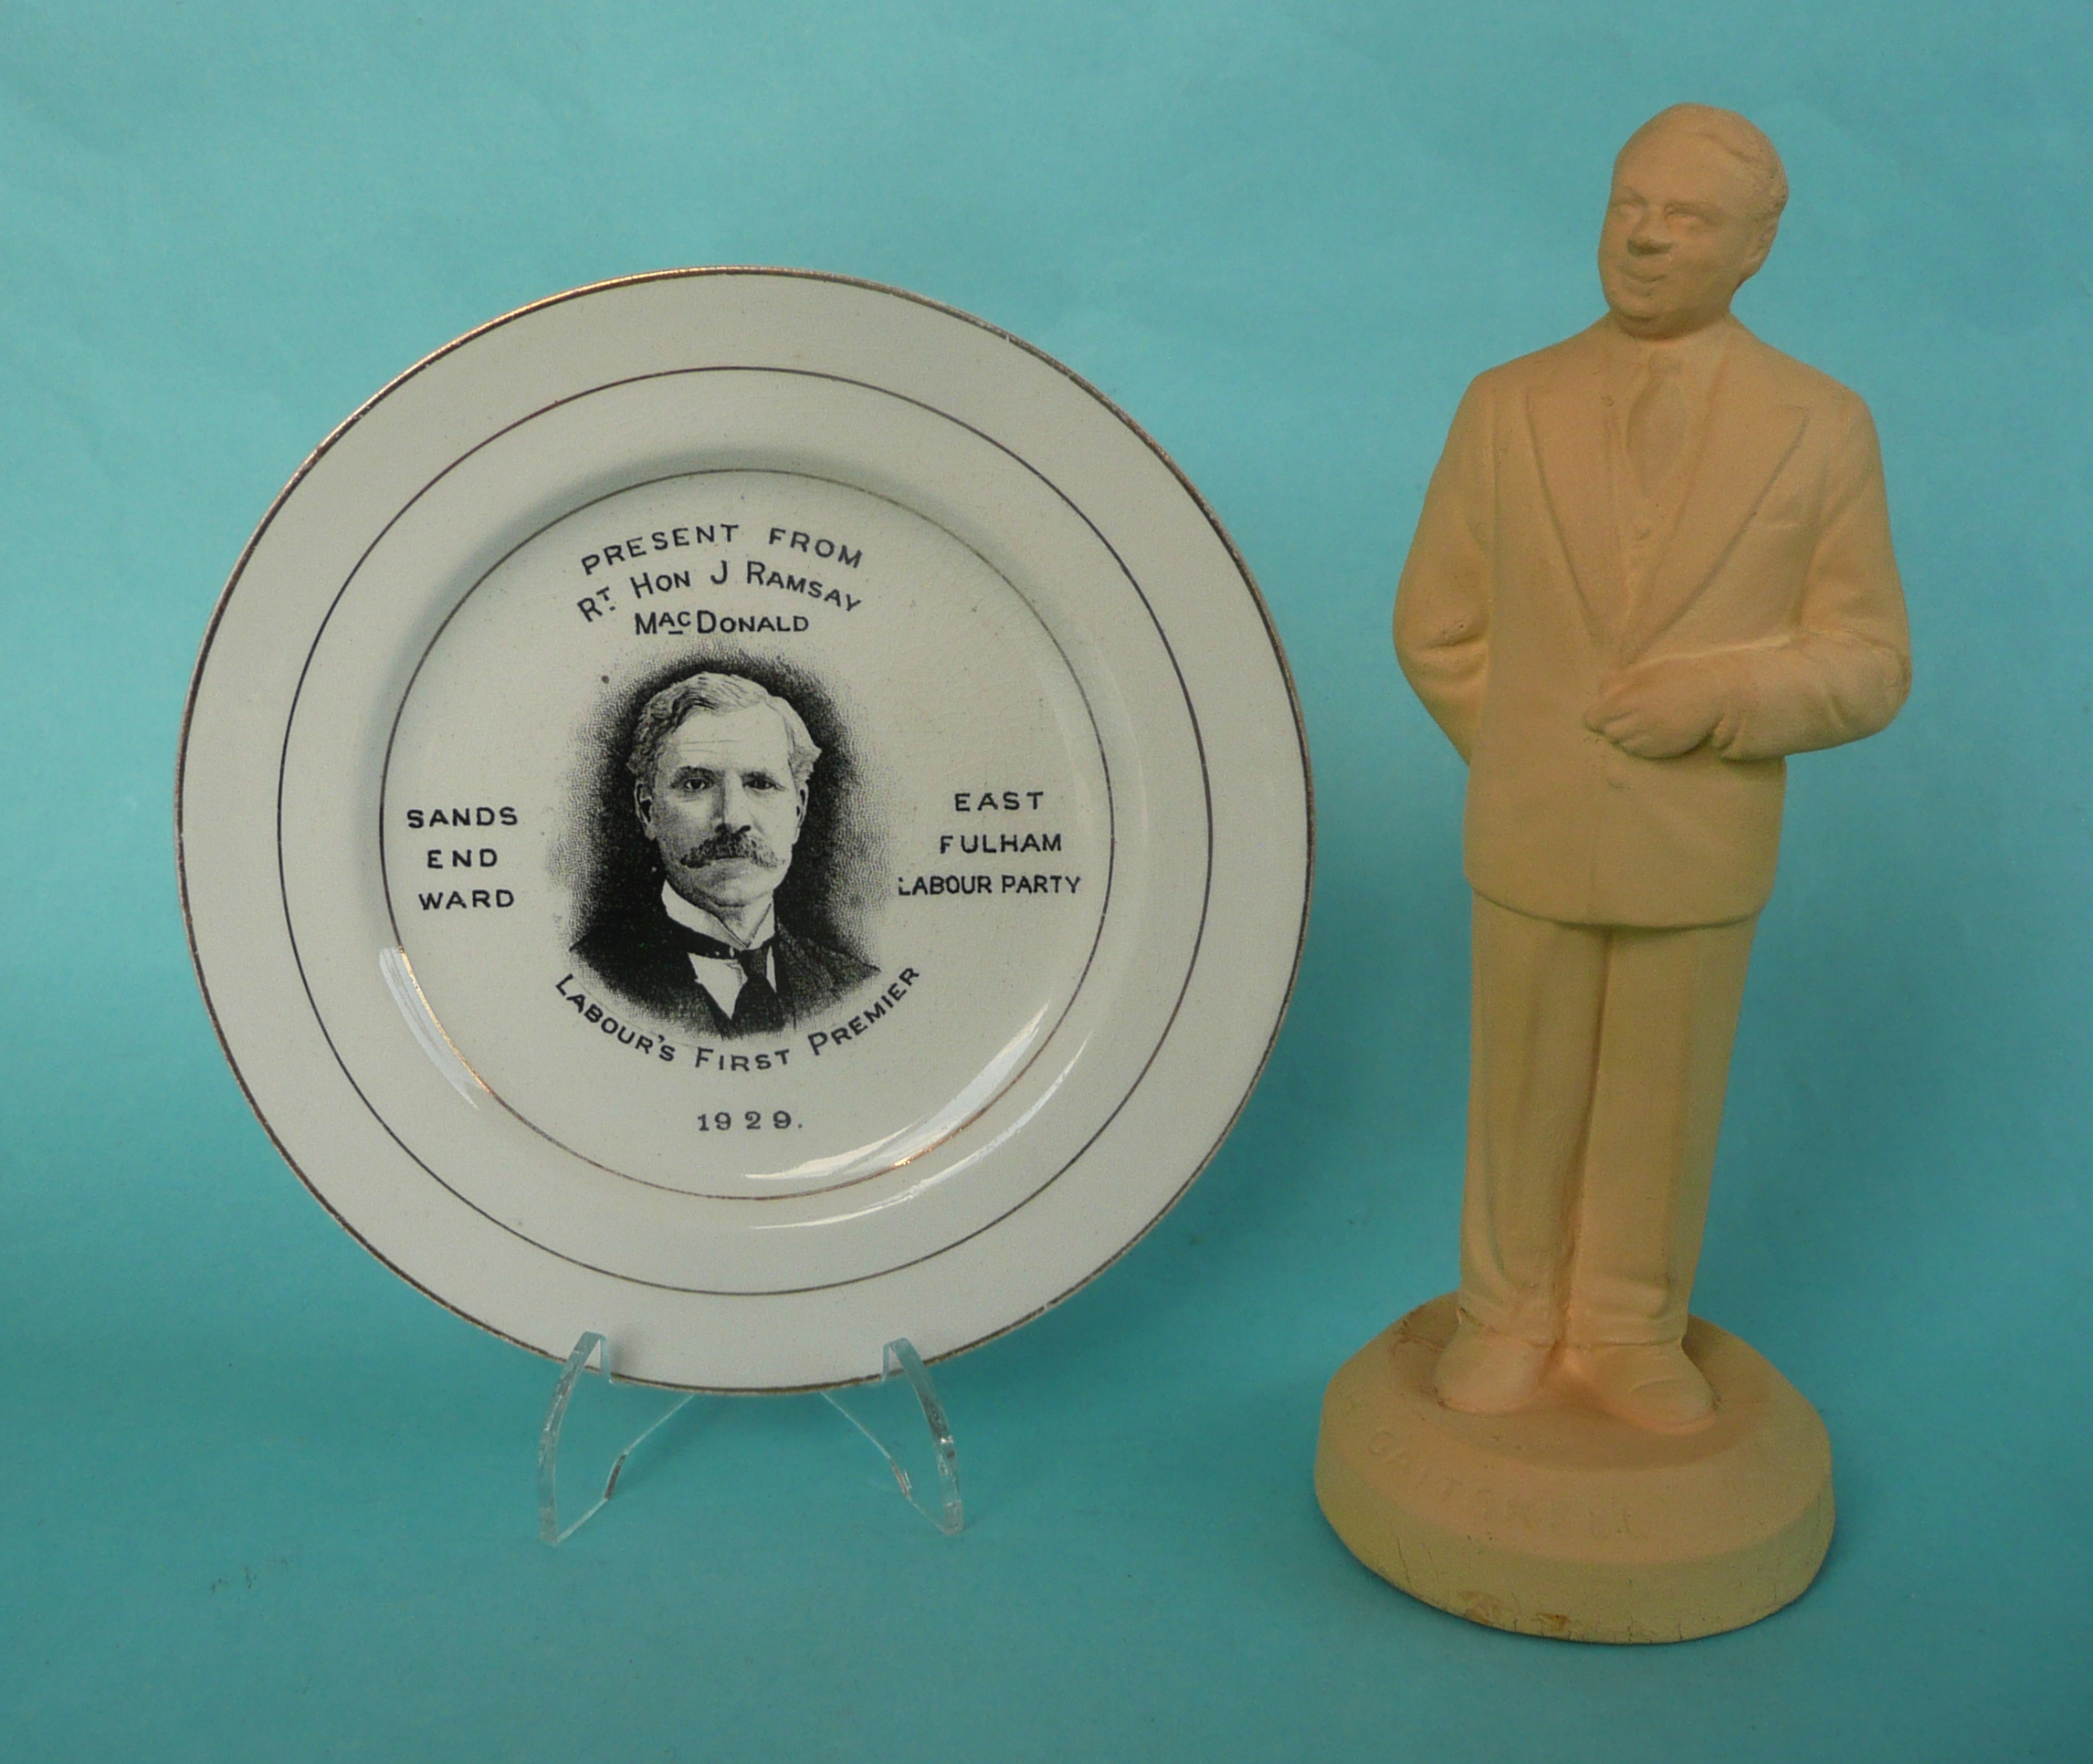 Lot 39 - A rare side plate printed in black with a named portrait of Ramsay McDonald inscribed as Labour's